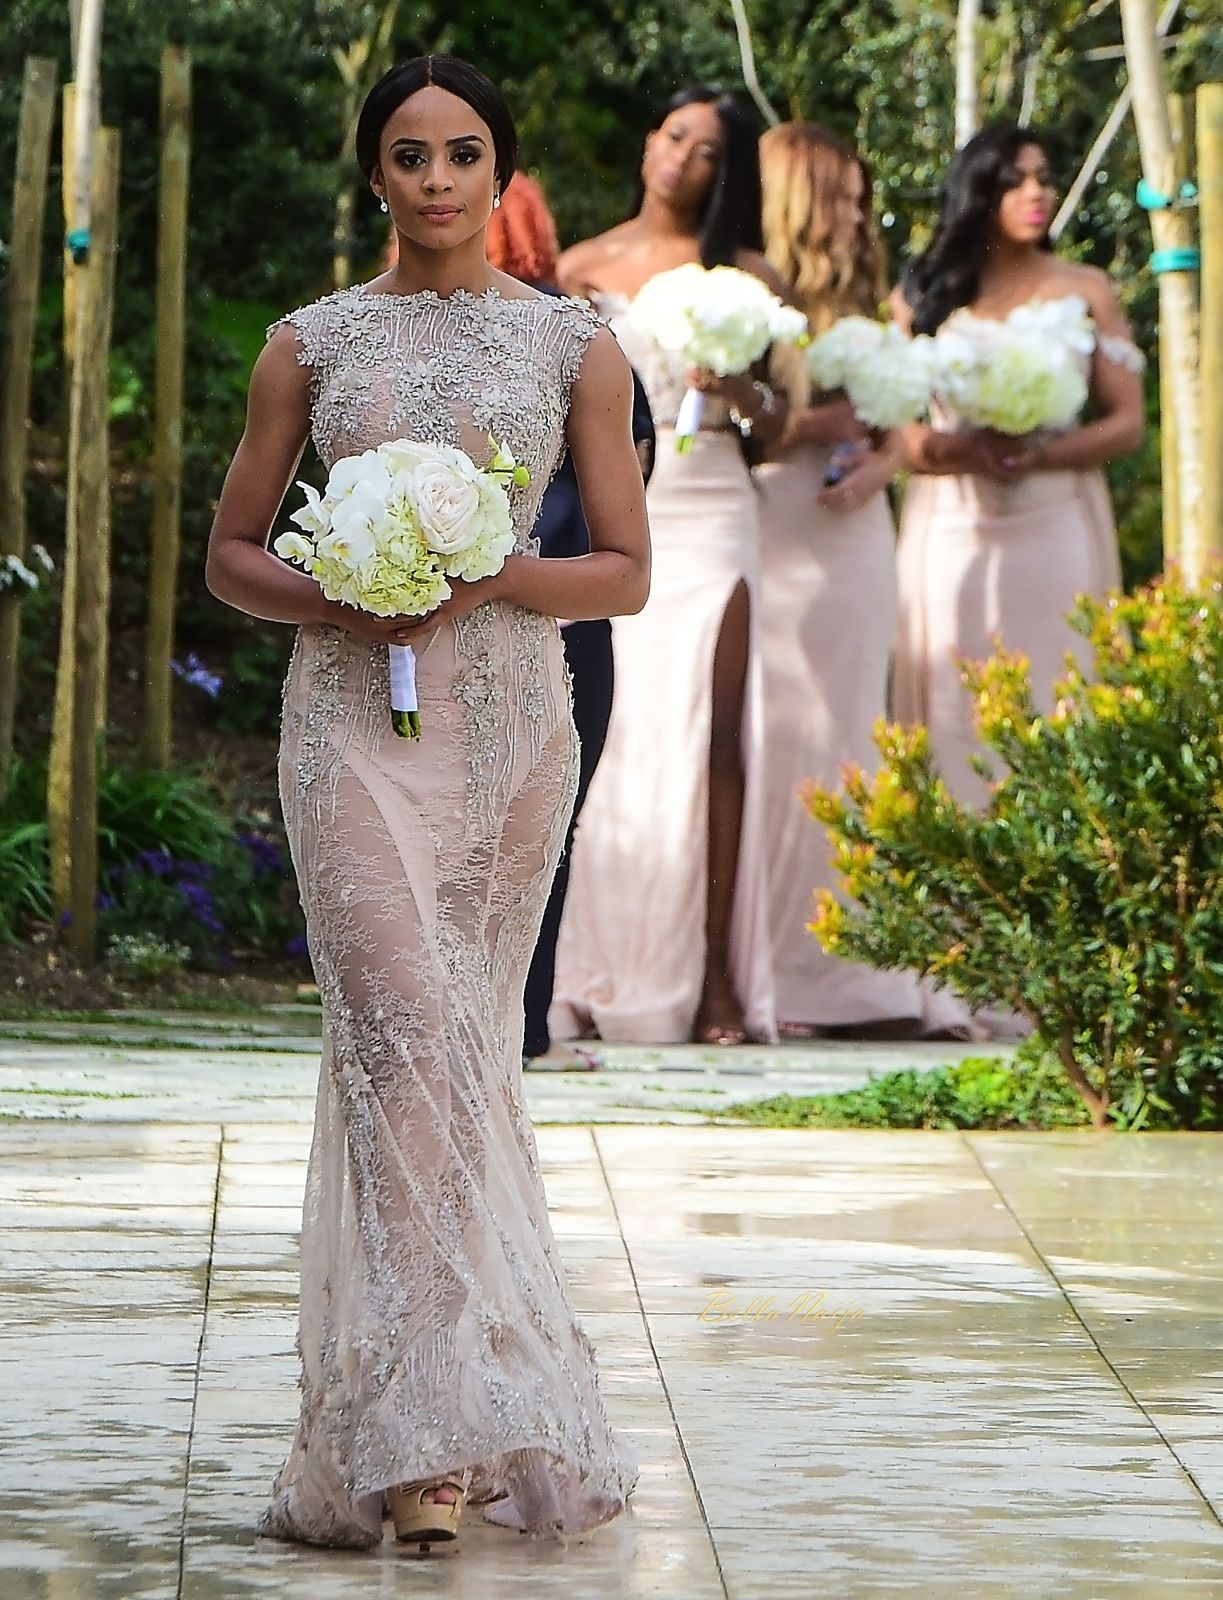 The beautiful Minnie Dlamini married her sweetheart Quinton Jones ...